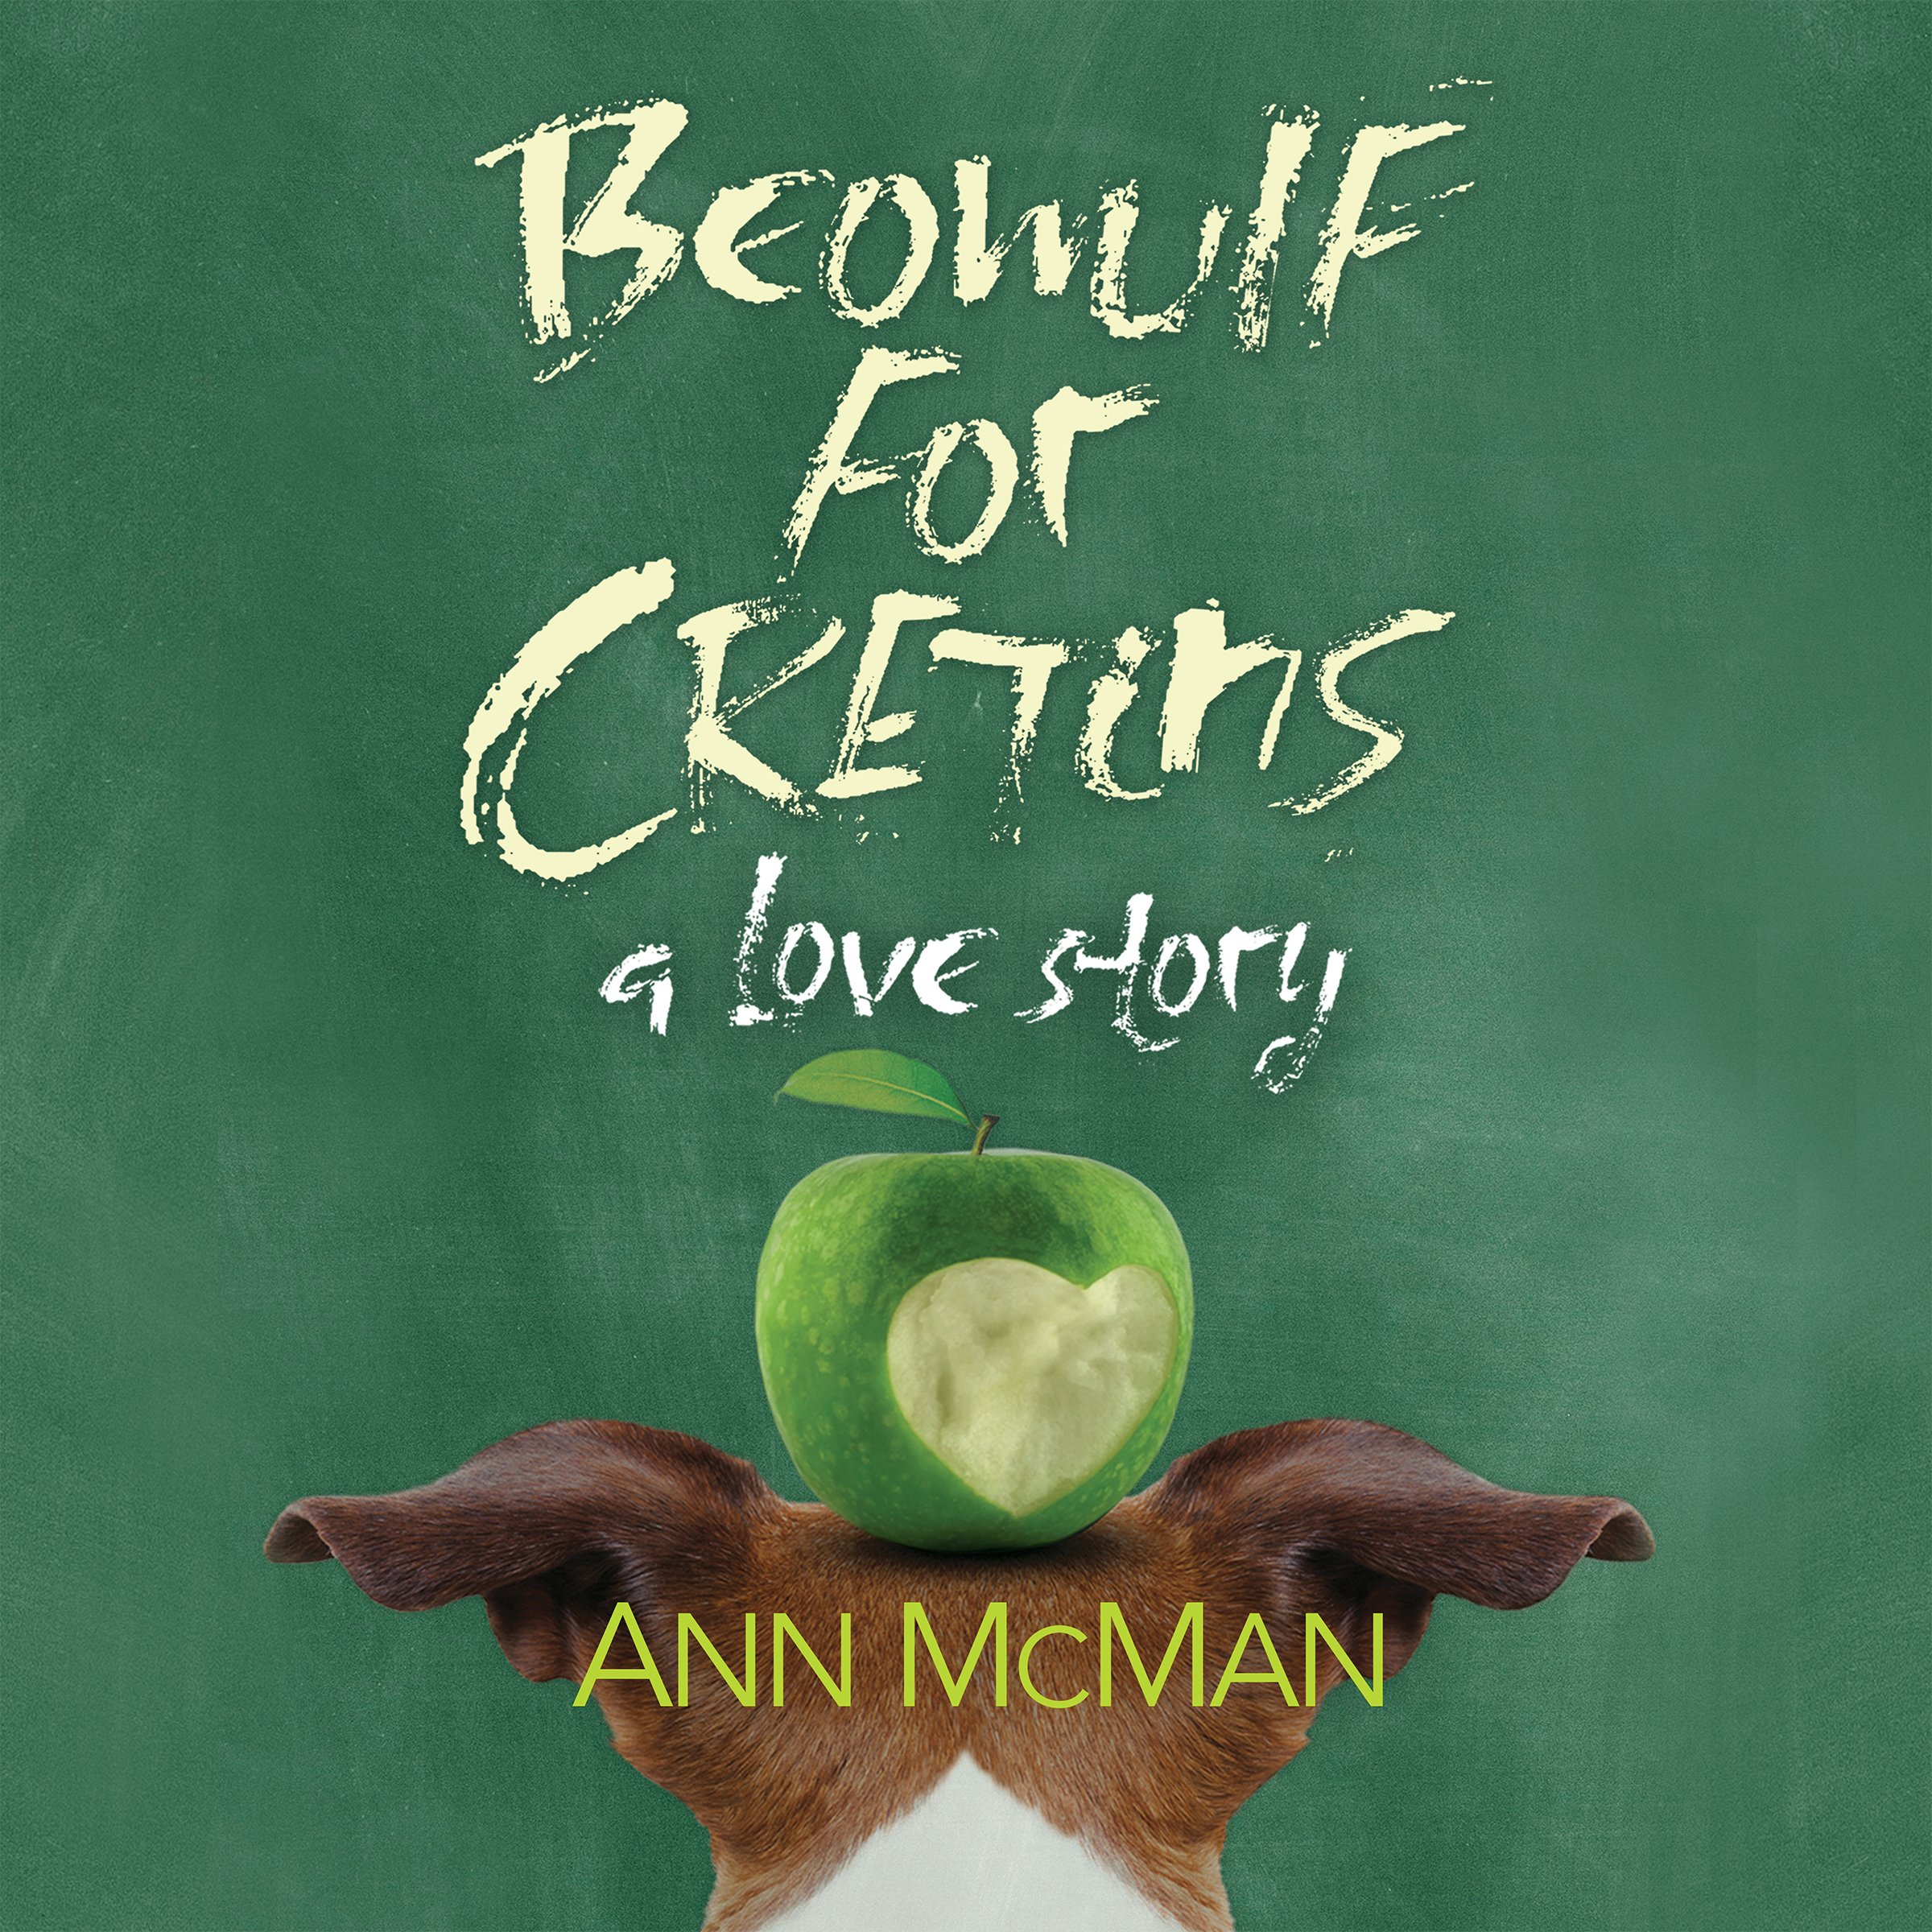 Beowulf for Cretins: A Love Story